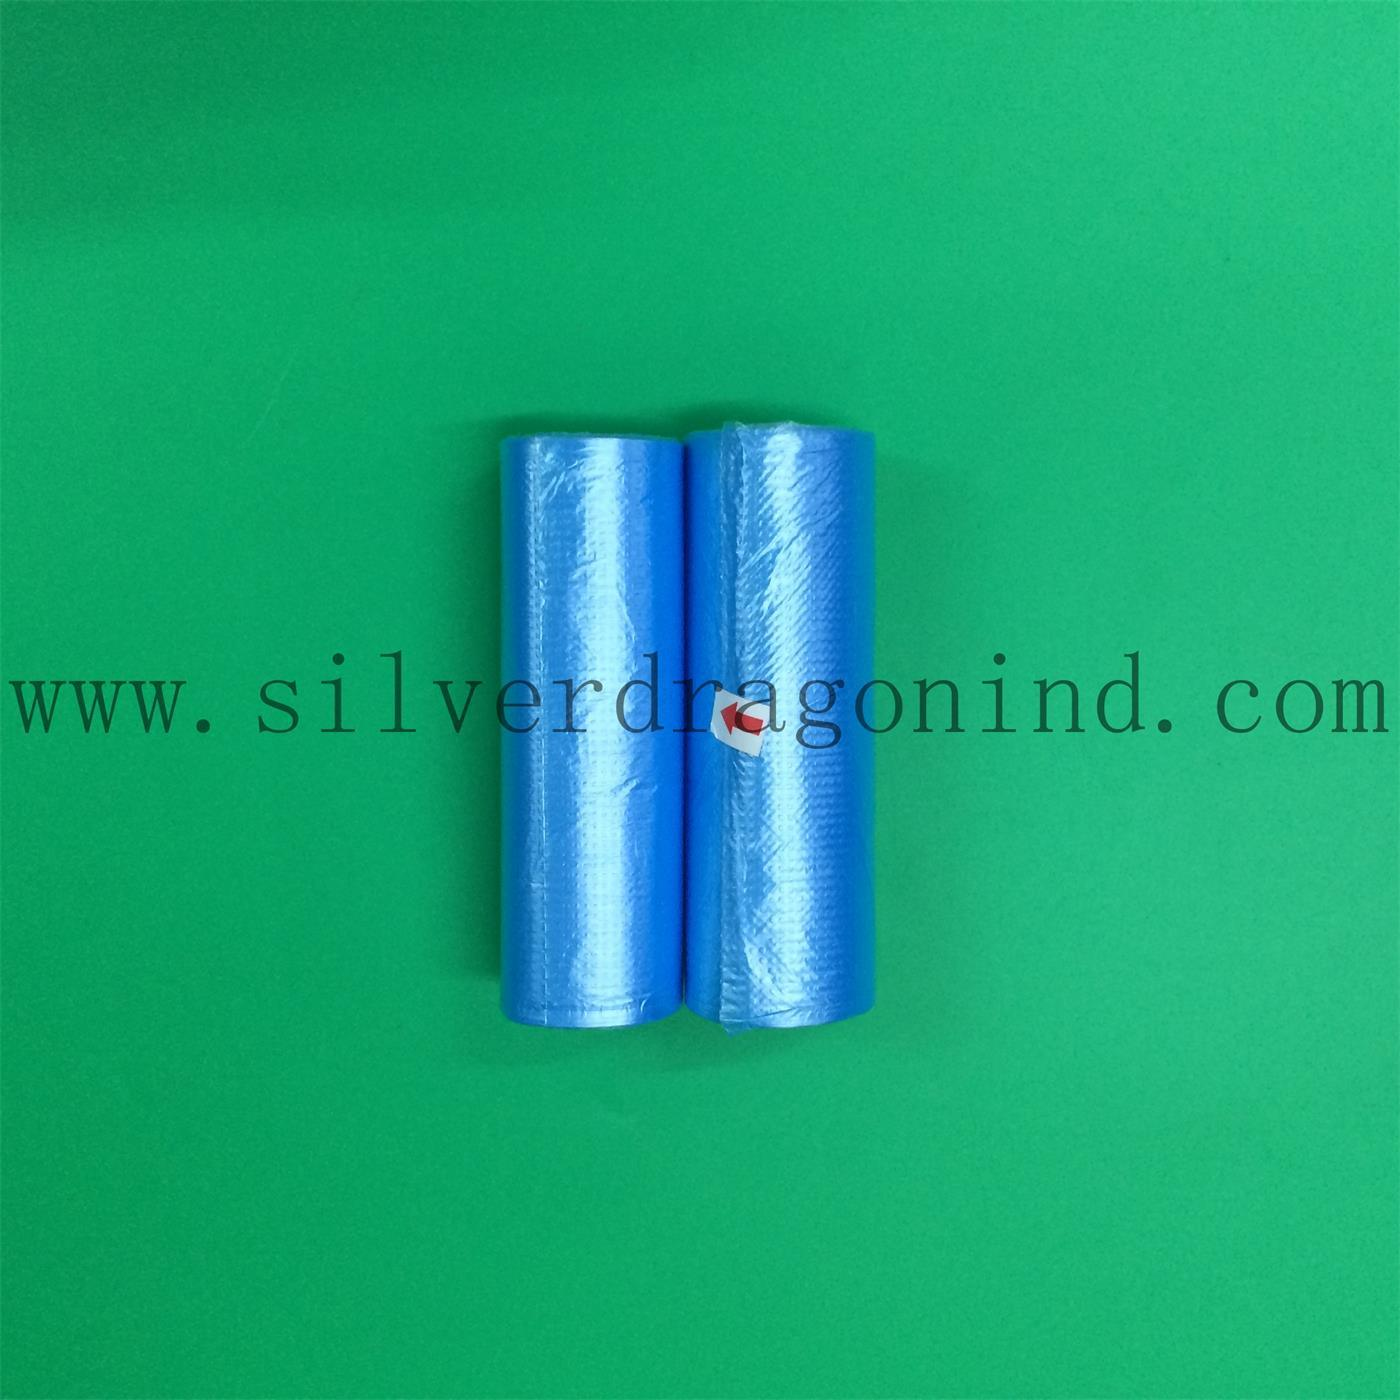 Eco-Friendly LDPE Plastic Trash Bags on Roll, Garbage Bag